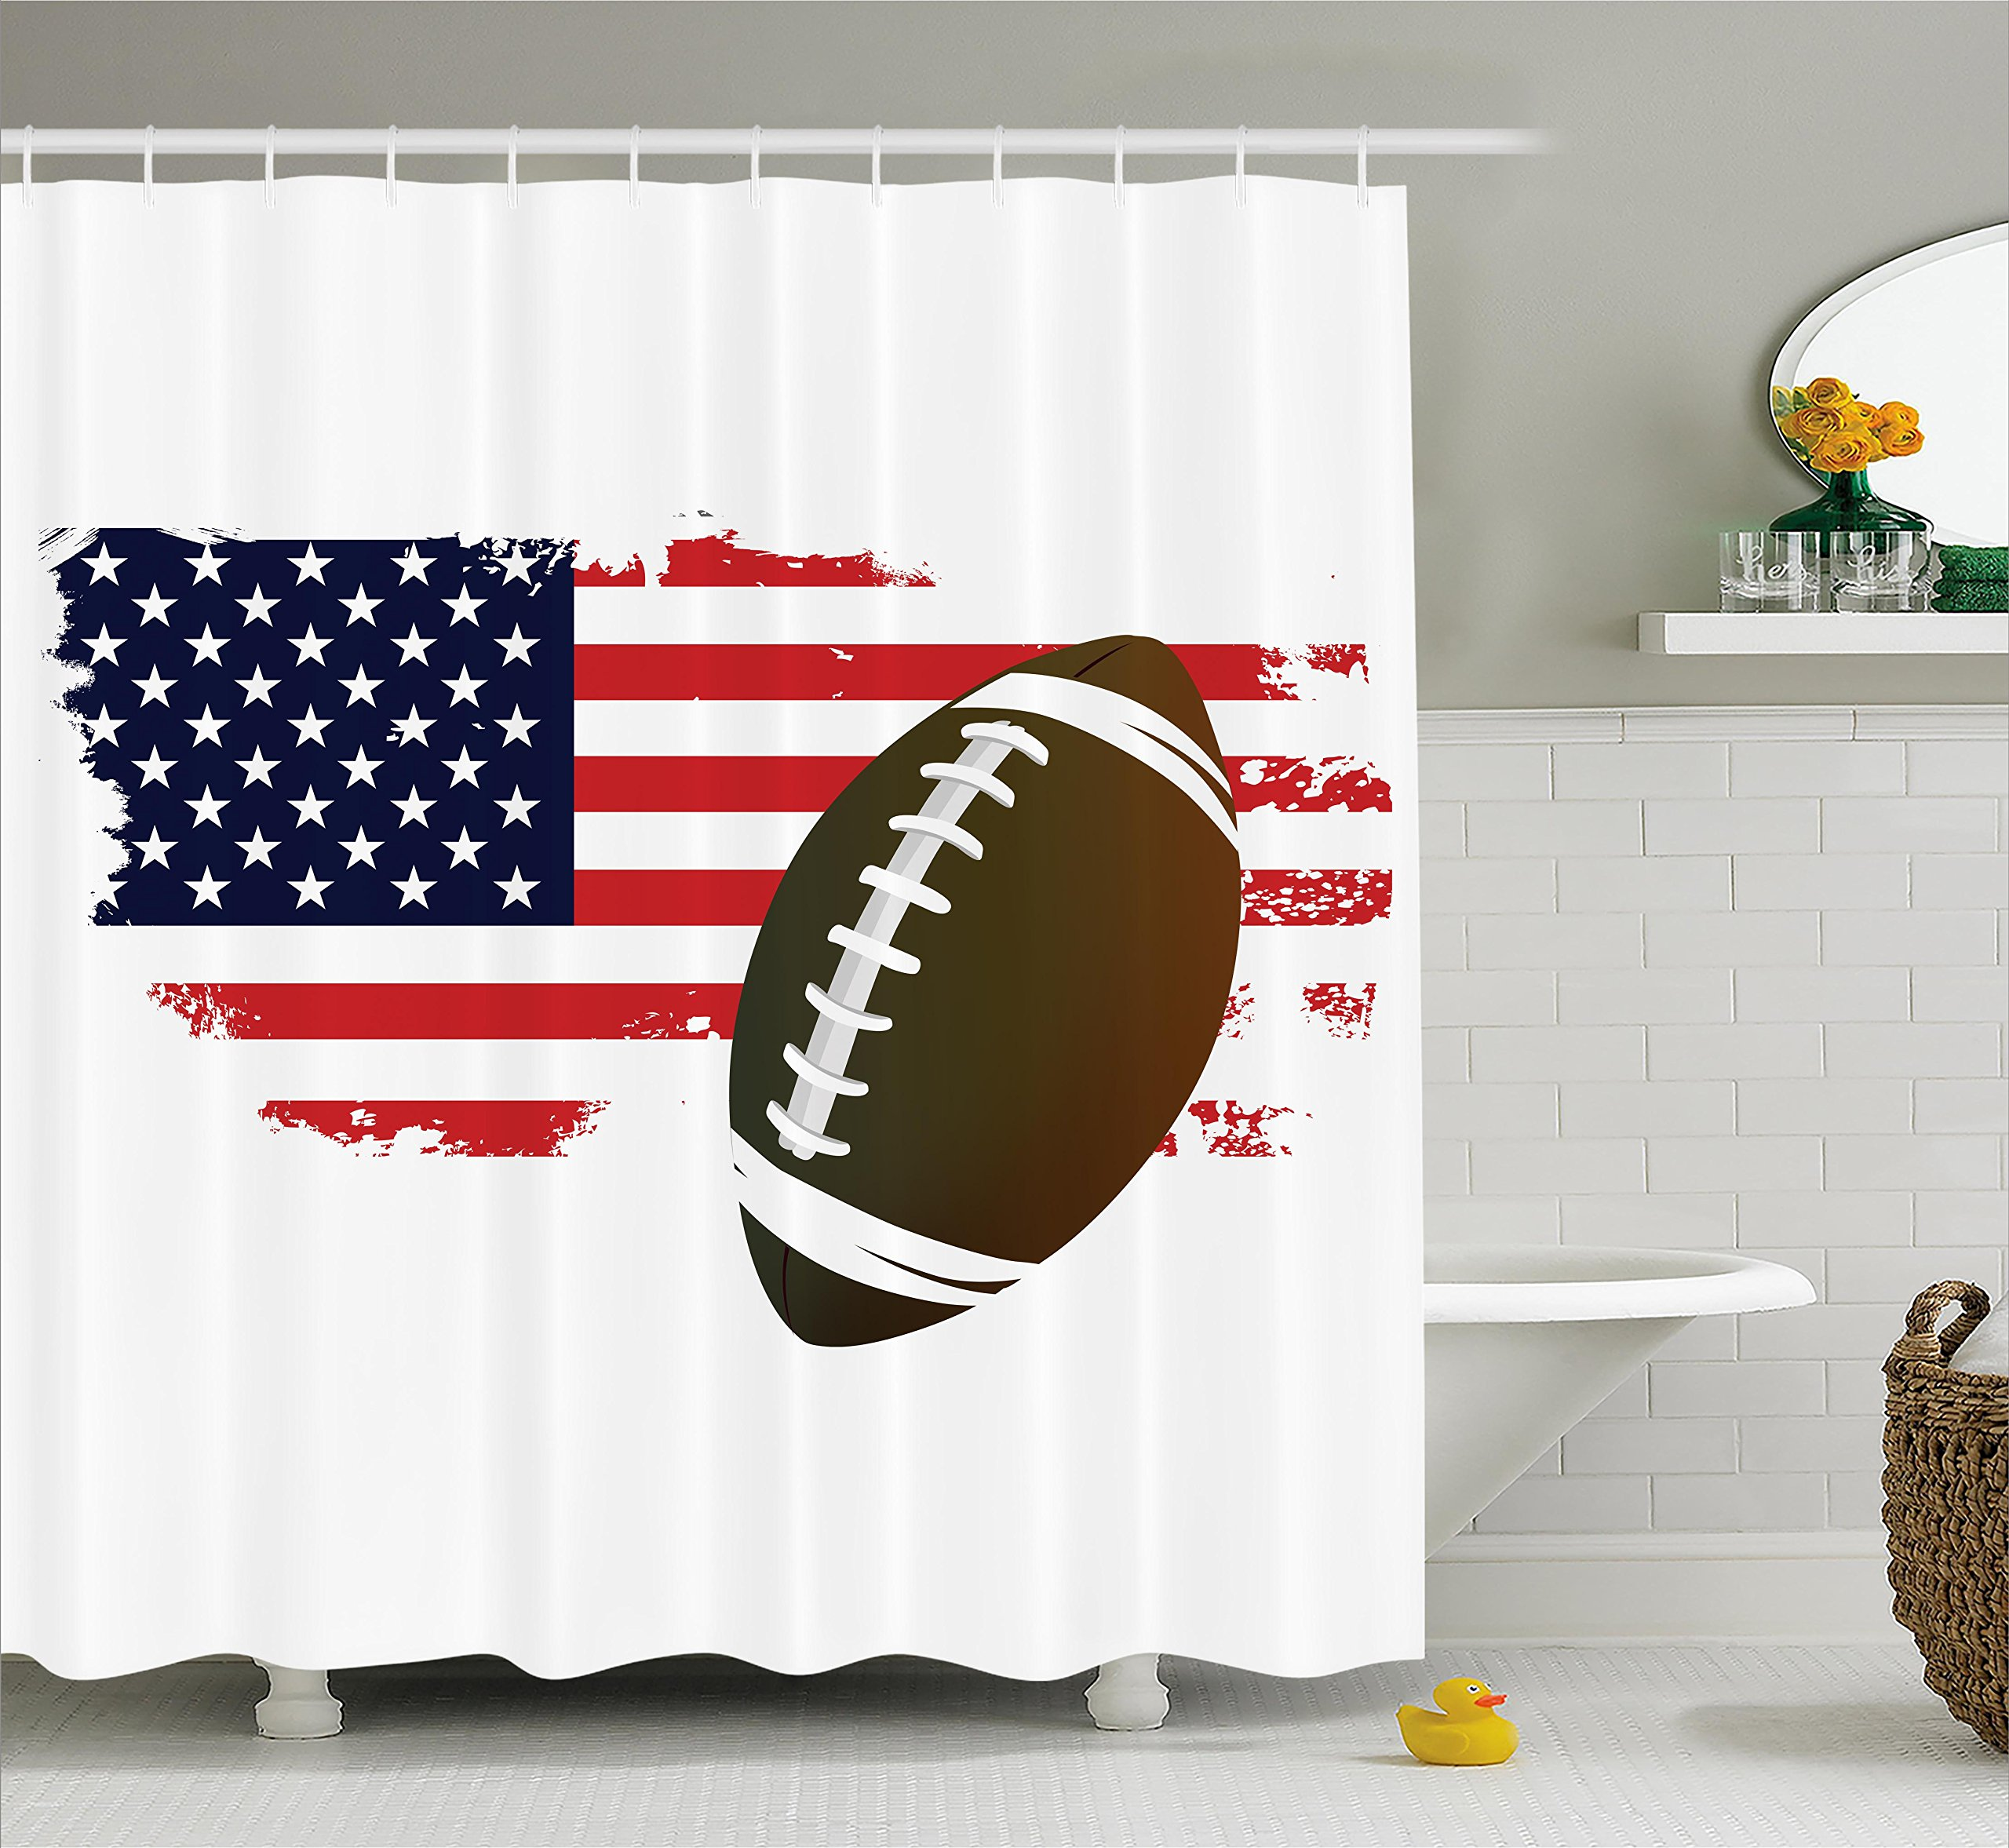 Ambesonne Sports Decor Collection, American Football Tradition Halftone Pattern of USA Flag Nation Tradition Image, Polyester Fabric Bathroom Shower Curtain Set with Hooks, Navy Red White Peru by Ambesonne (Image #1)